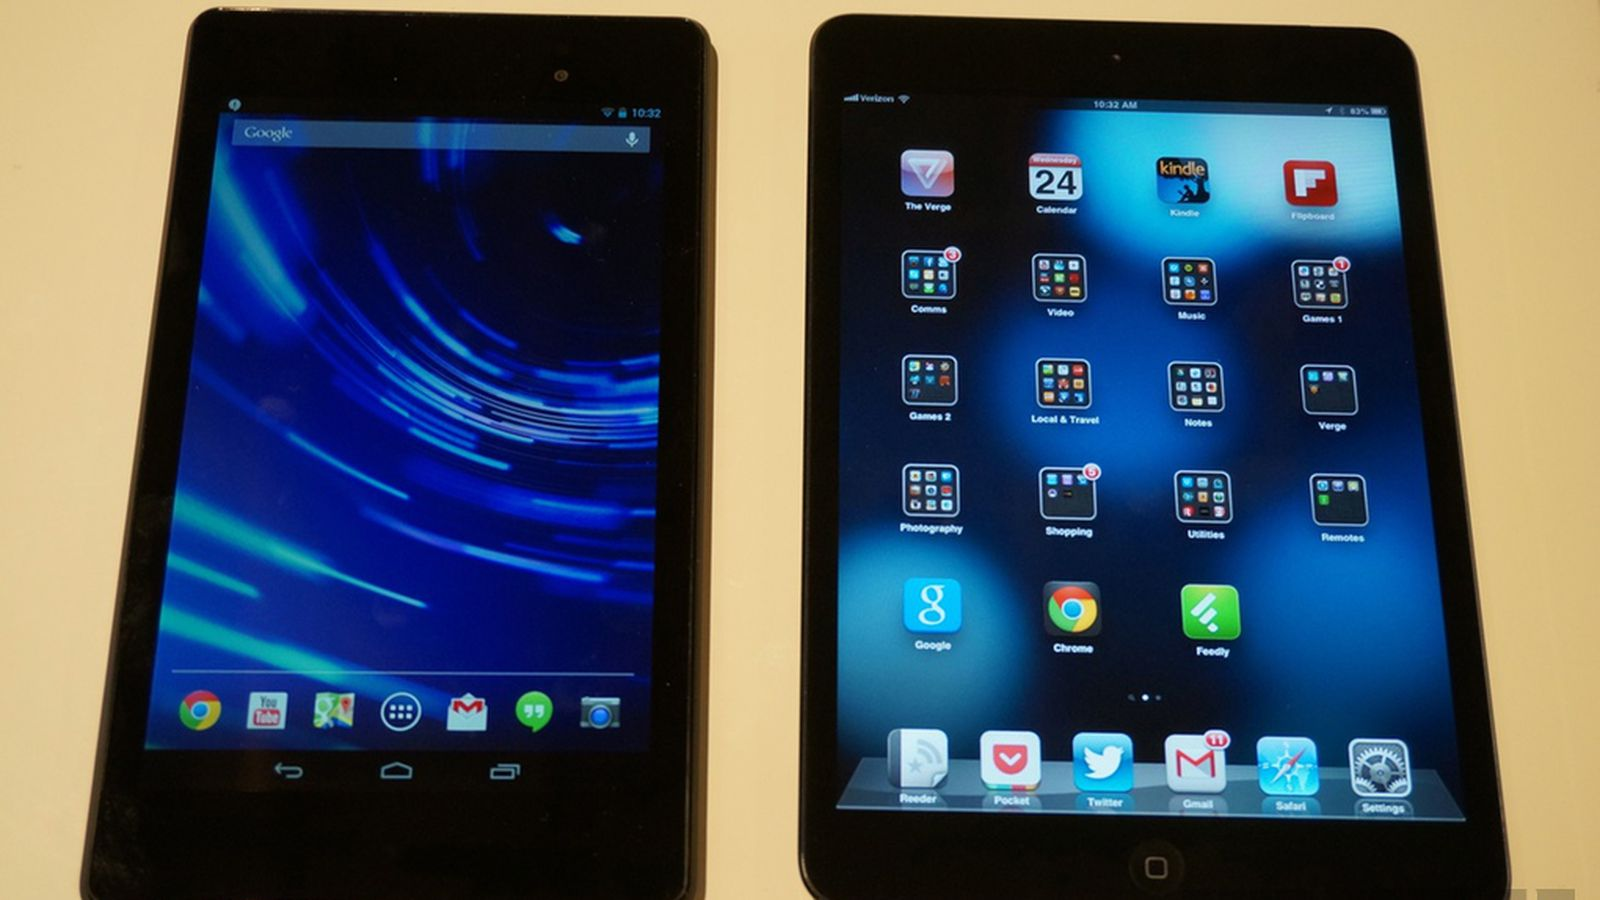 IPad 4 x Nexus 7: Which of is the Best?